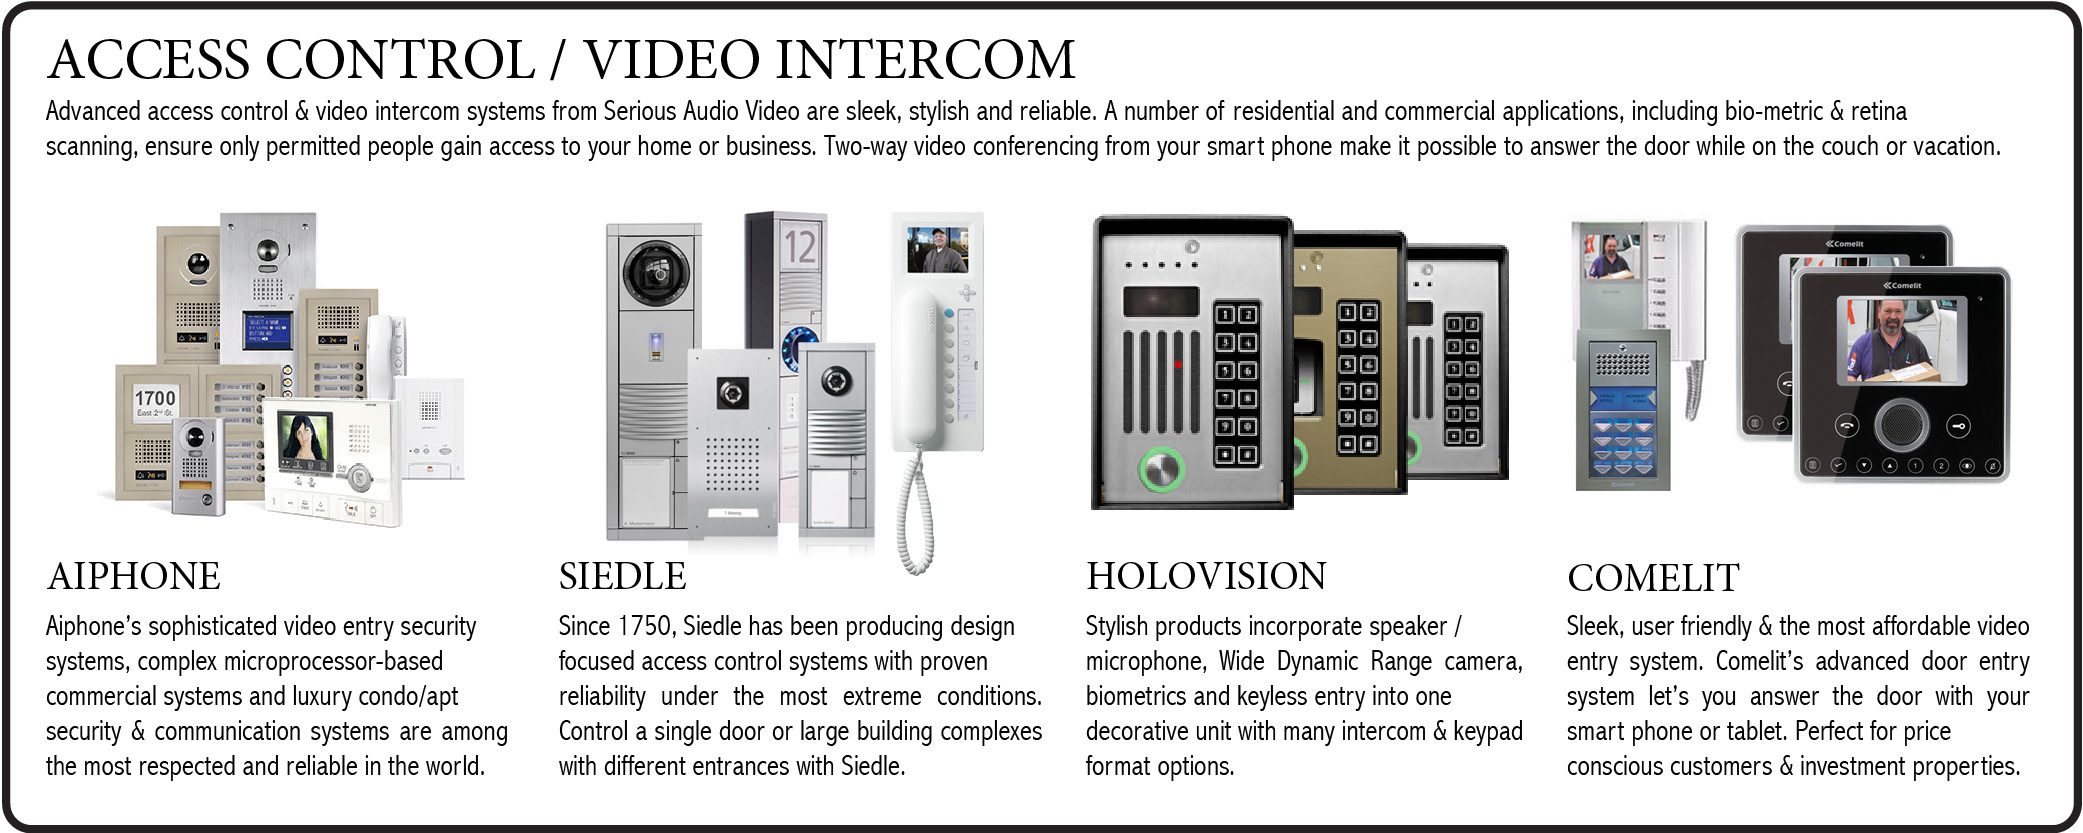 aiphone-siedle-holovision-comelit-access-control-nj-serious-audio-video